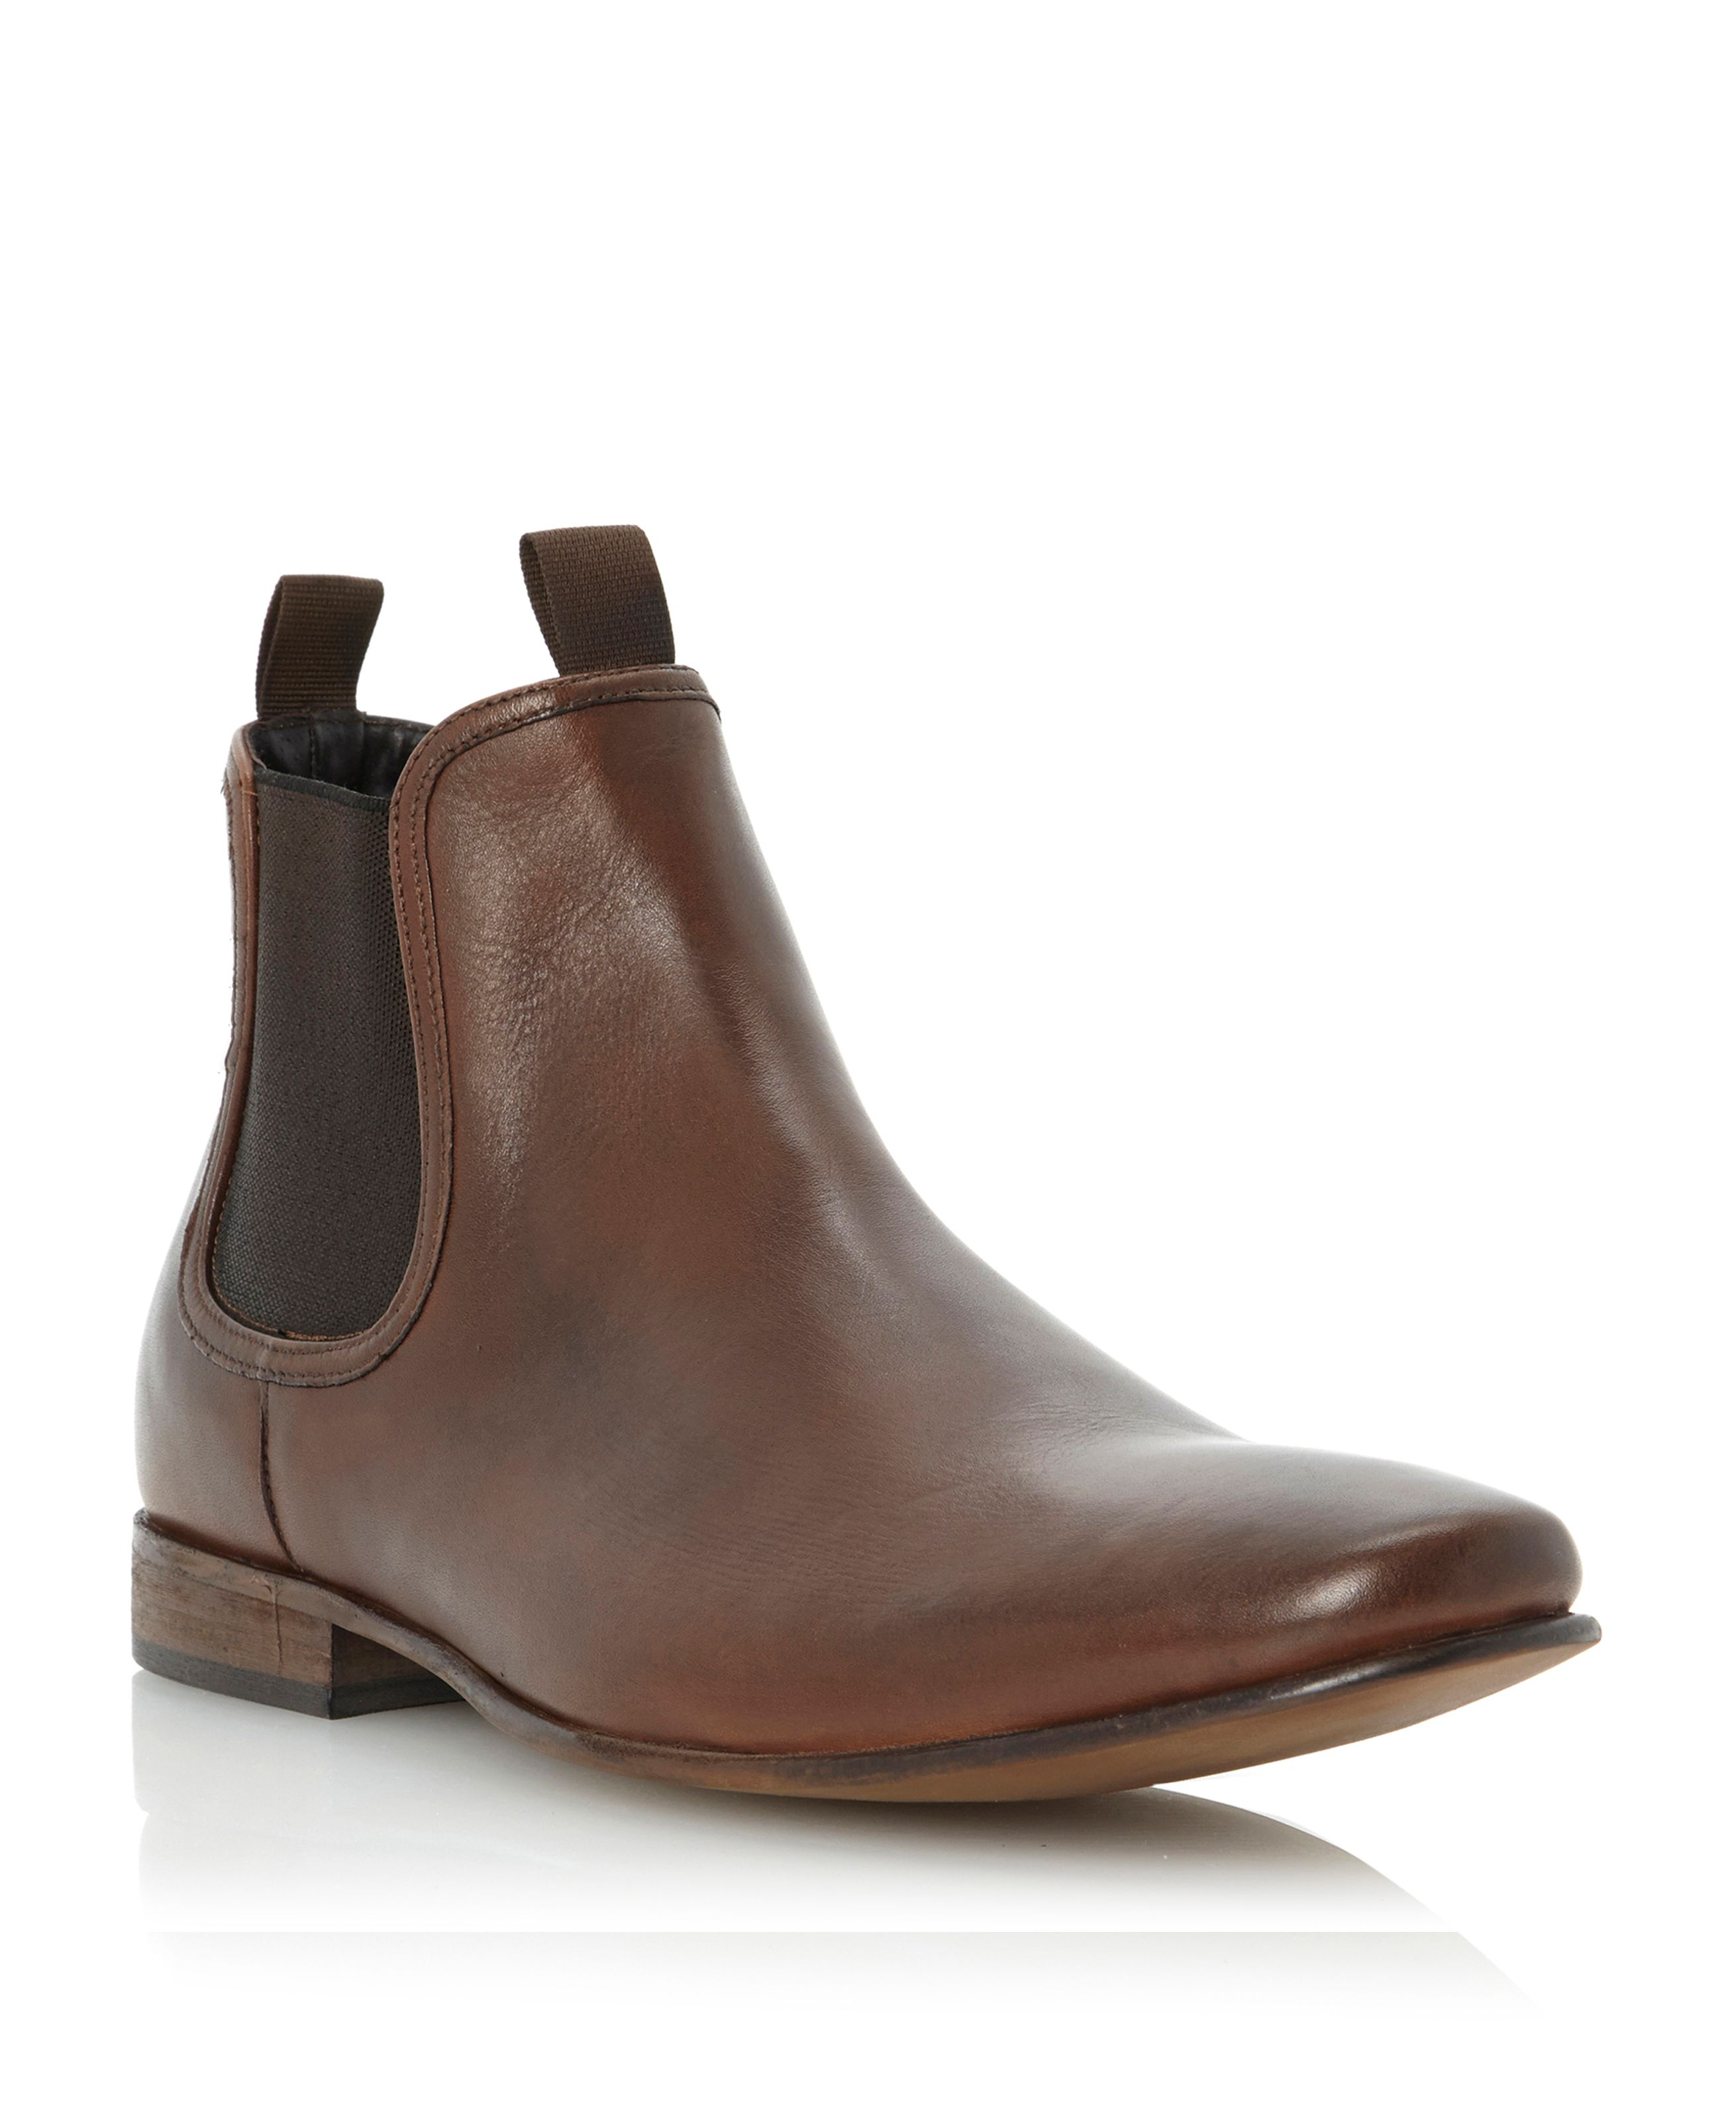 Midtown chelsea boot